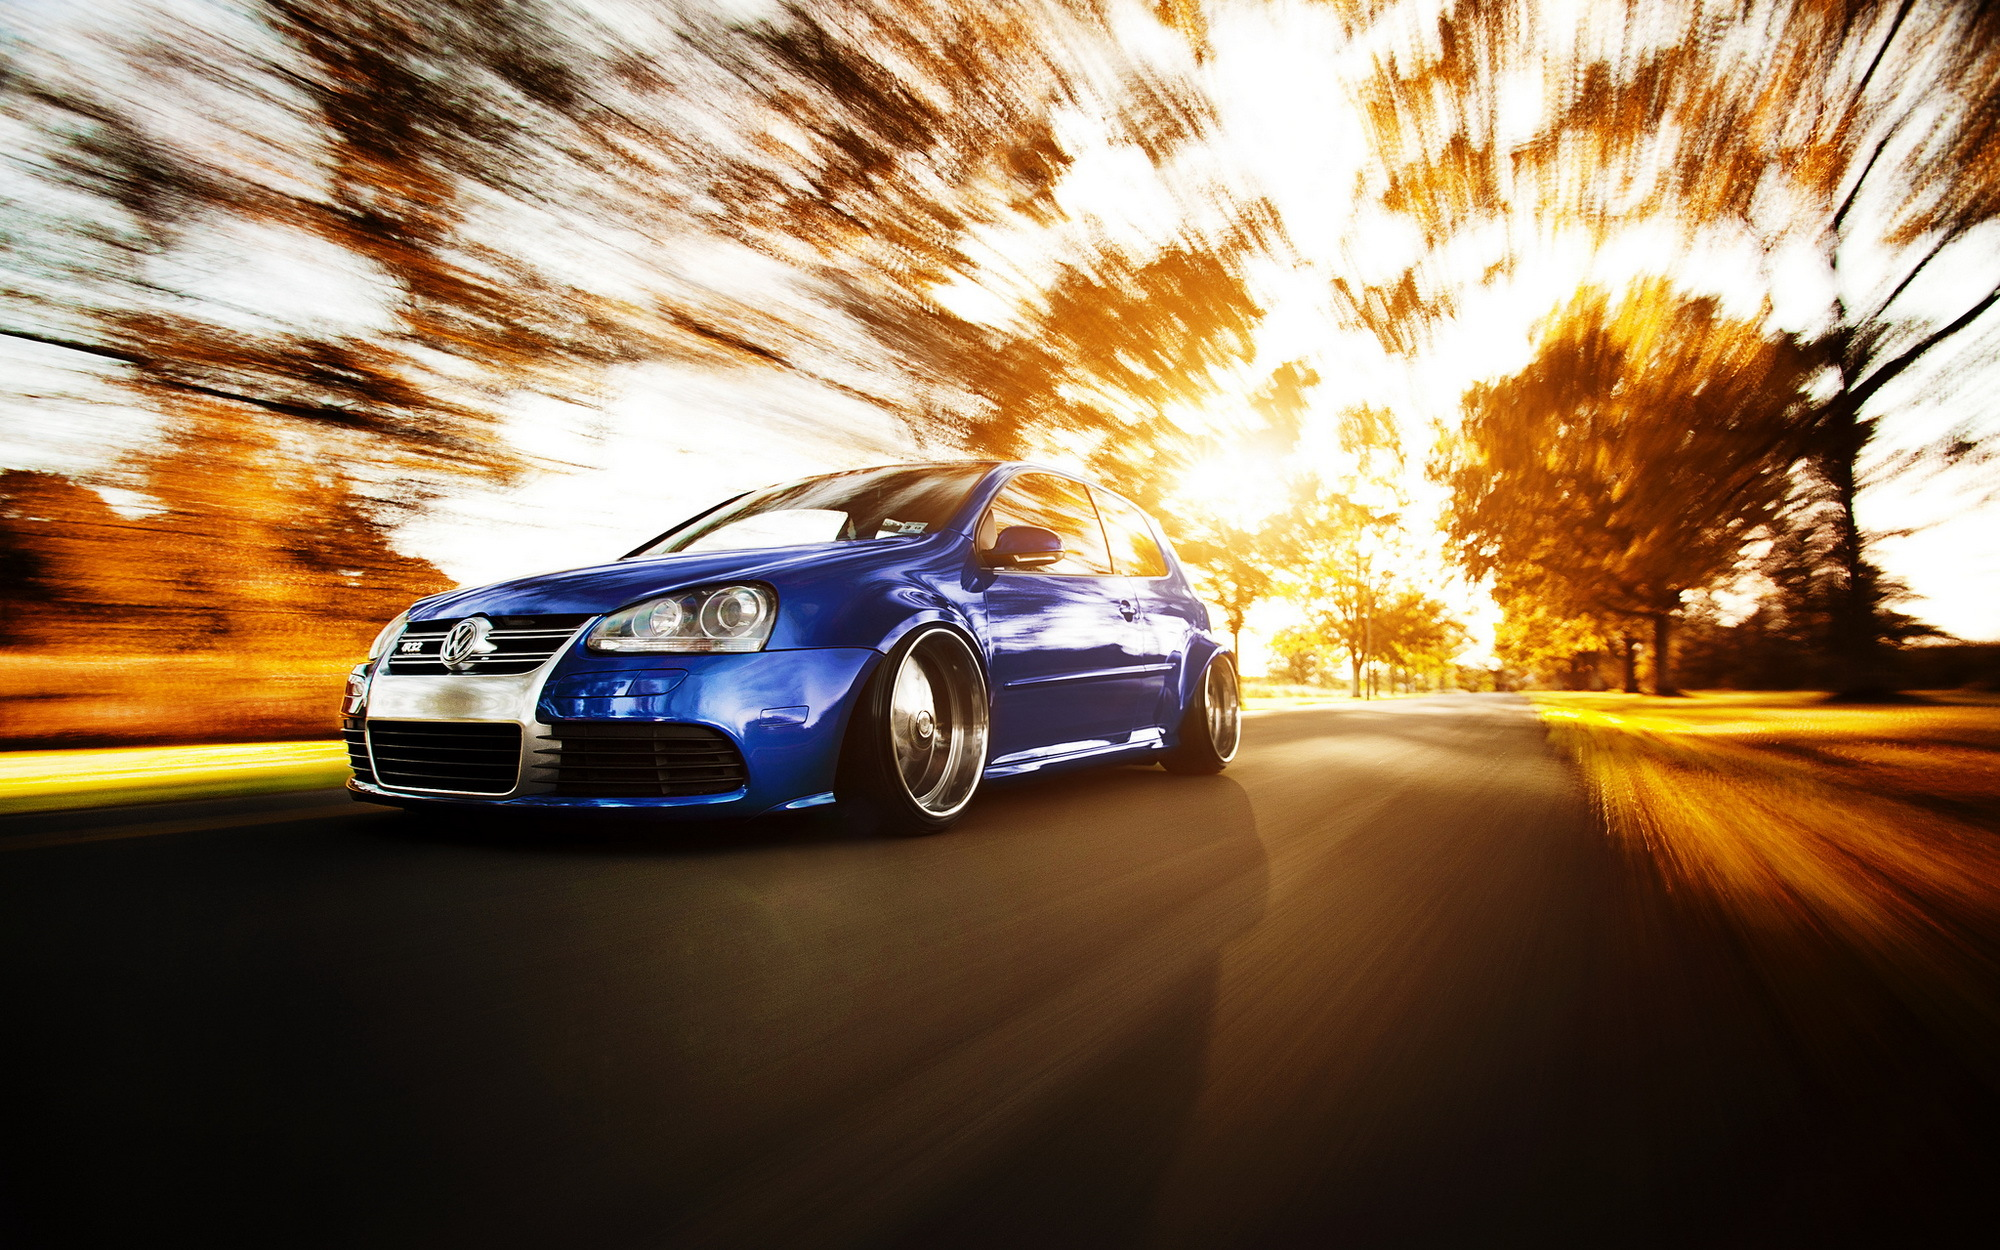 Road Tuning Volkswagen Golf Gti Wallpaper